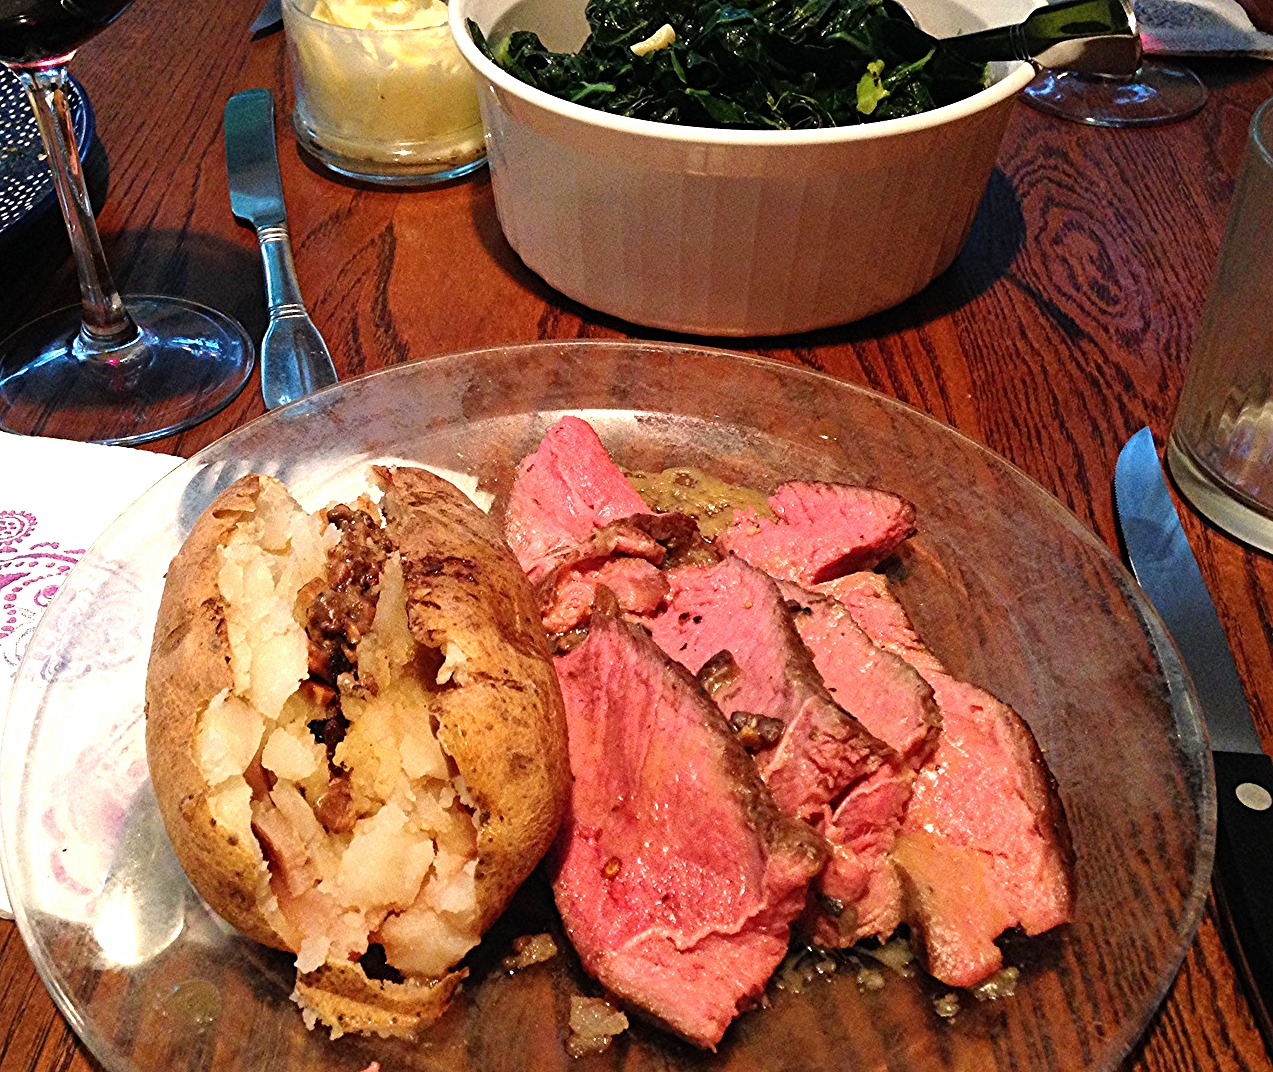 Grass Fed Sirloin Tip Roast Beef with Baked Potato, and Sautéed Swiss Chard.